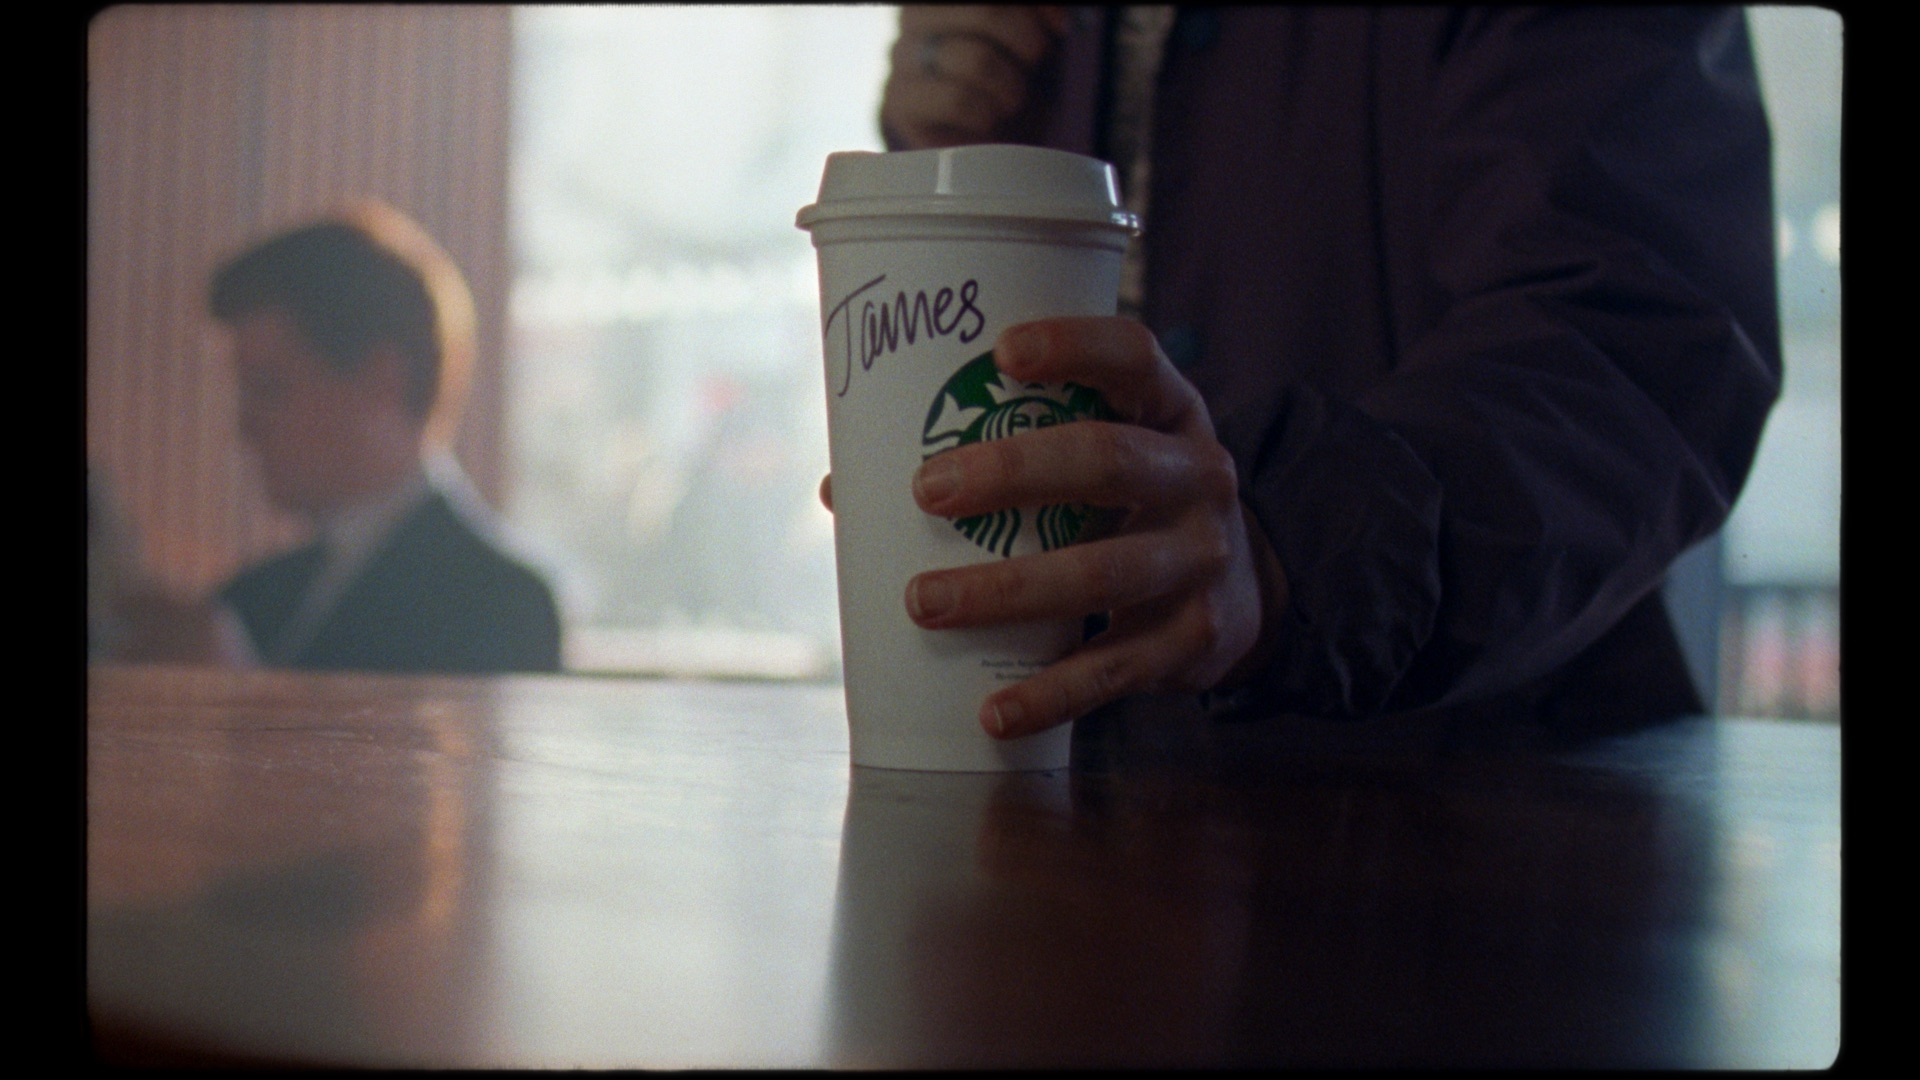 Starbucks' trans rights advert with equality charity Mermaids